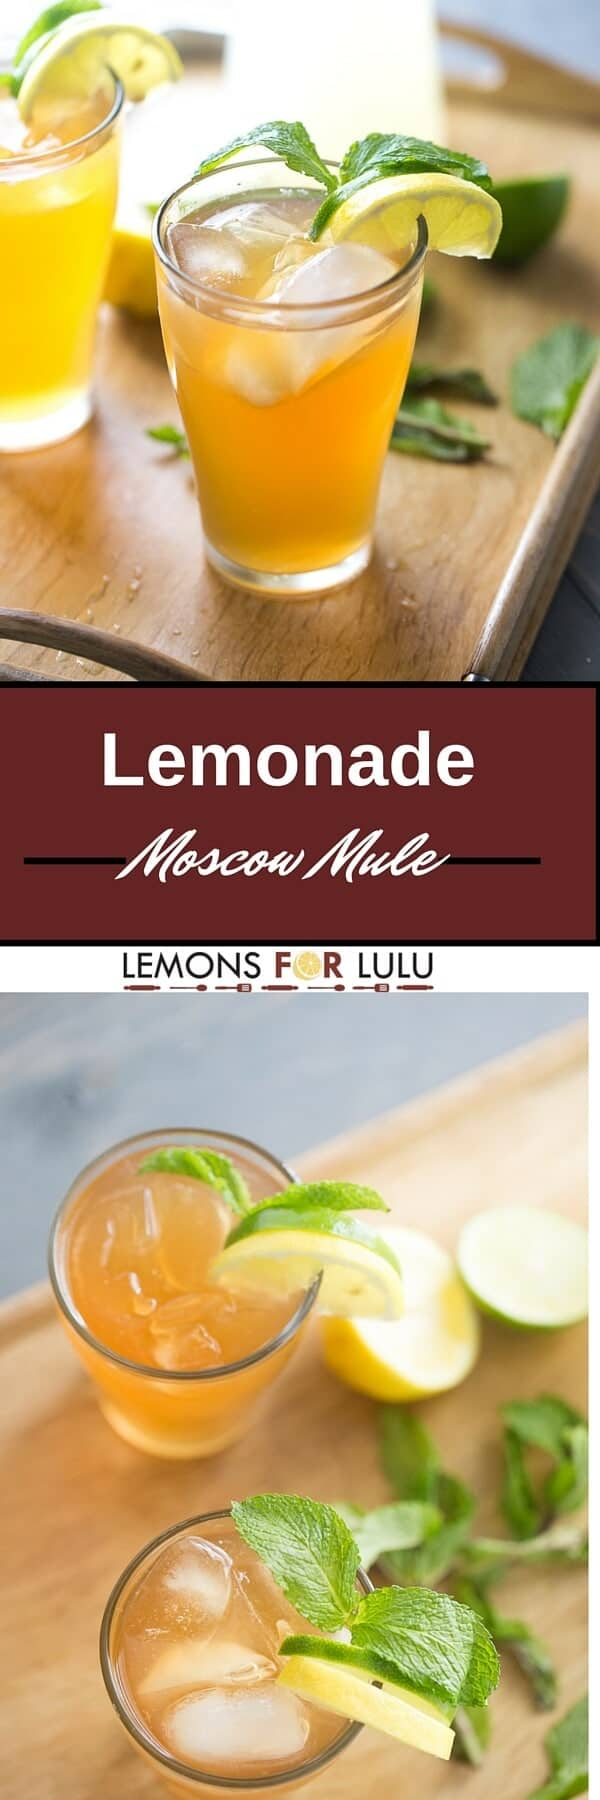 This mule cocktail is like summer in a glass. Refreshing lemonade, lemon and limes collide with crisp ginger beer and vodka for this grown up treat!